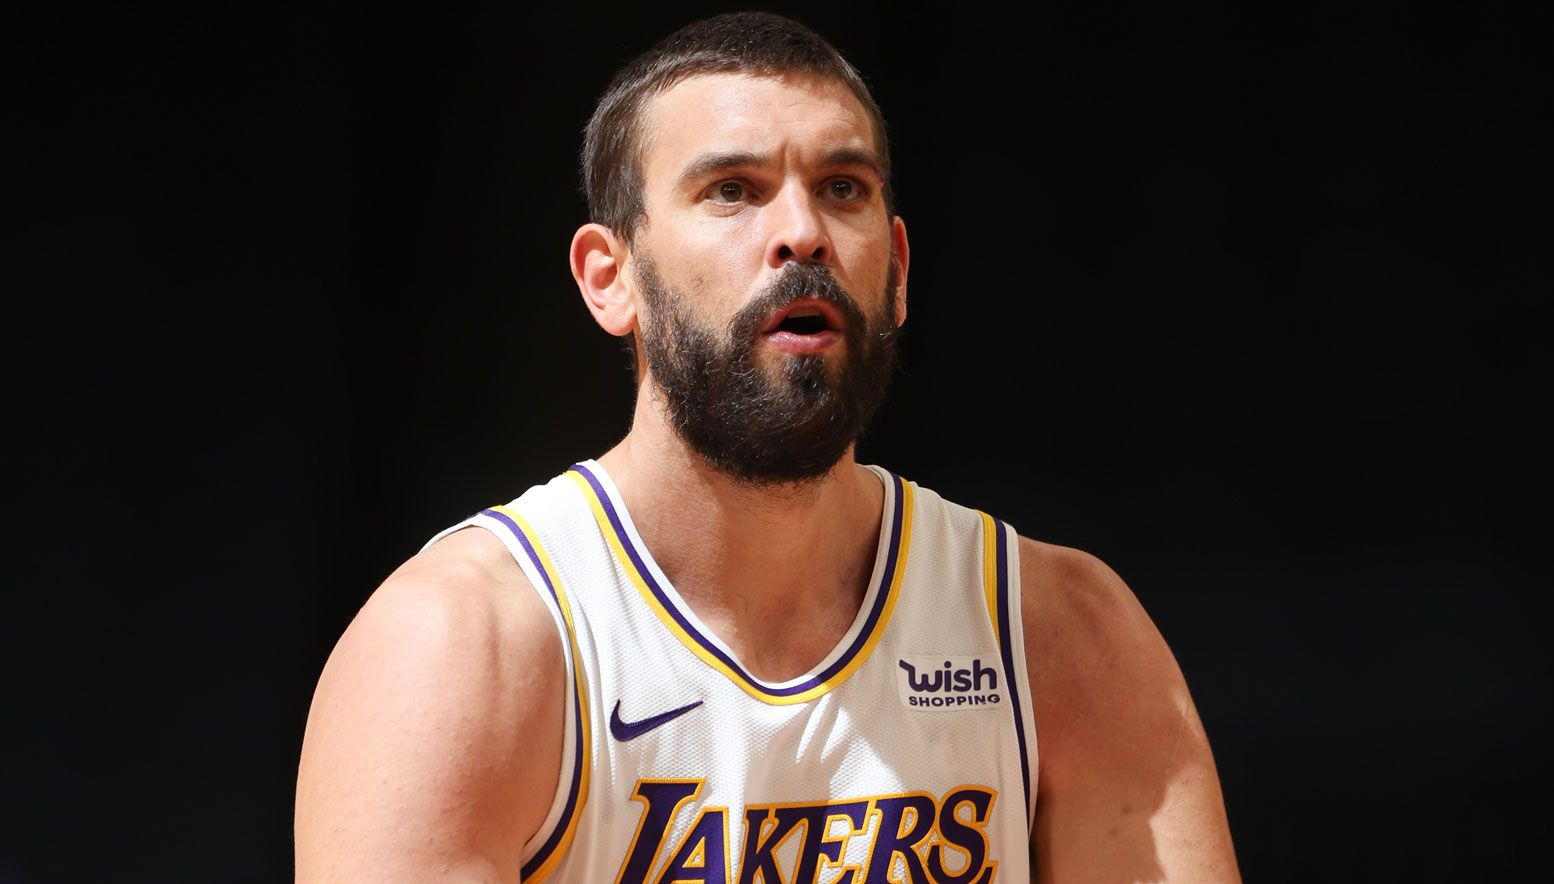 Marc Gasol playing for the Lakers